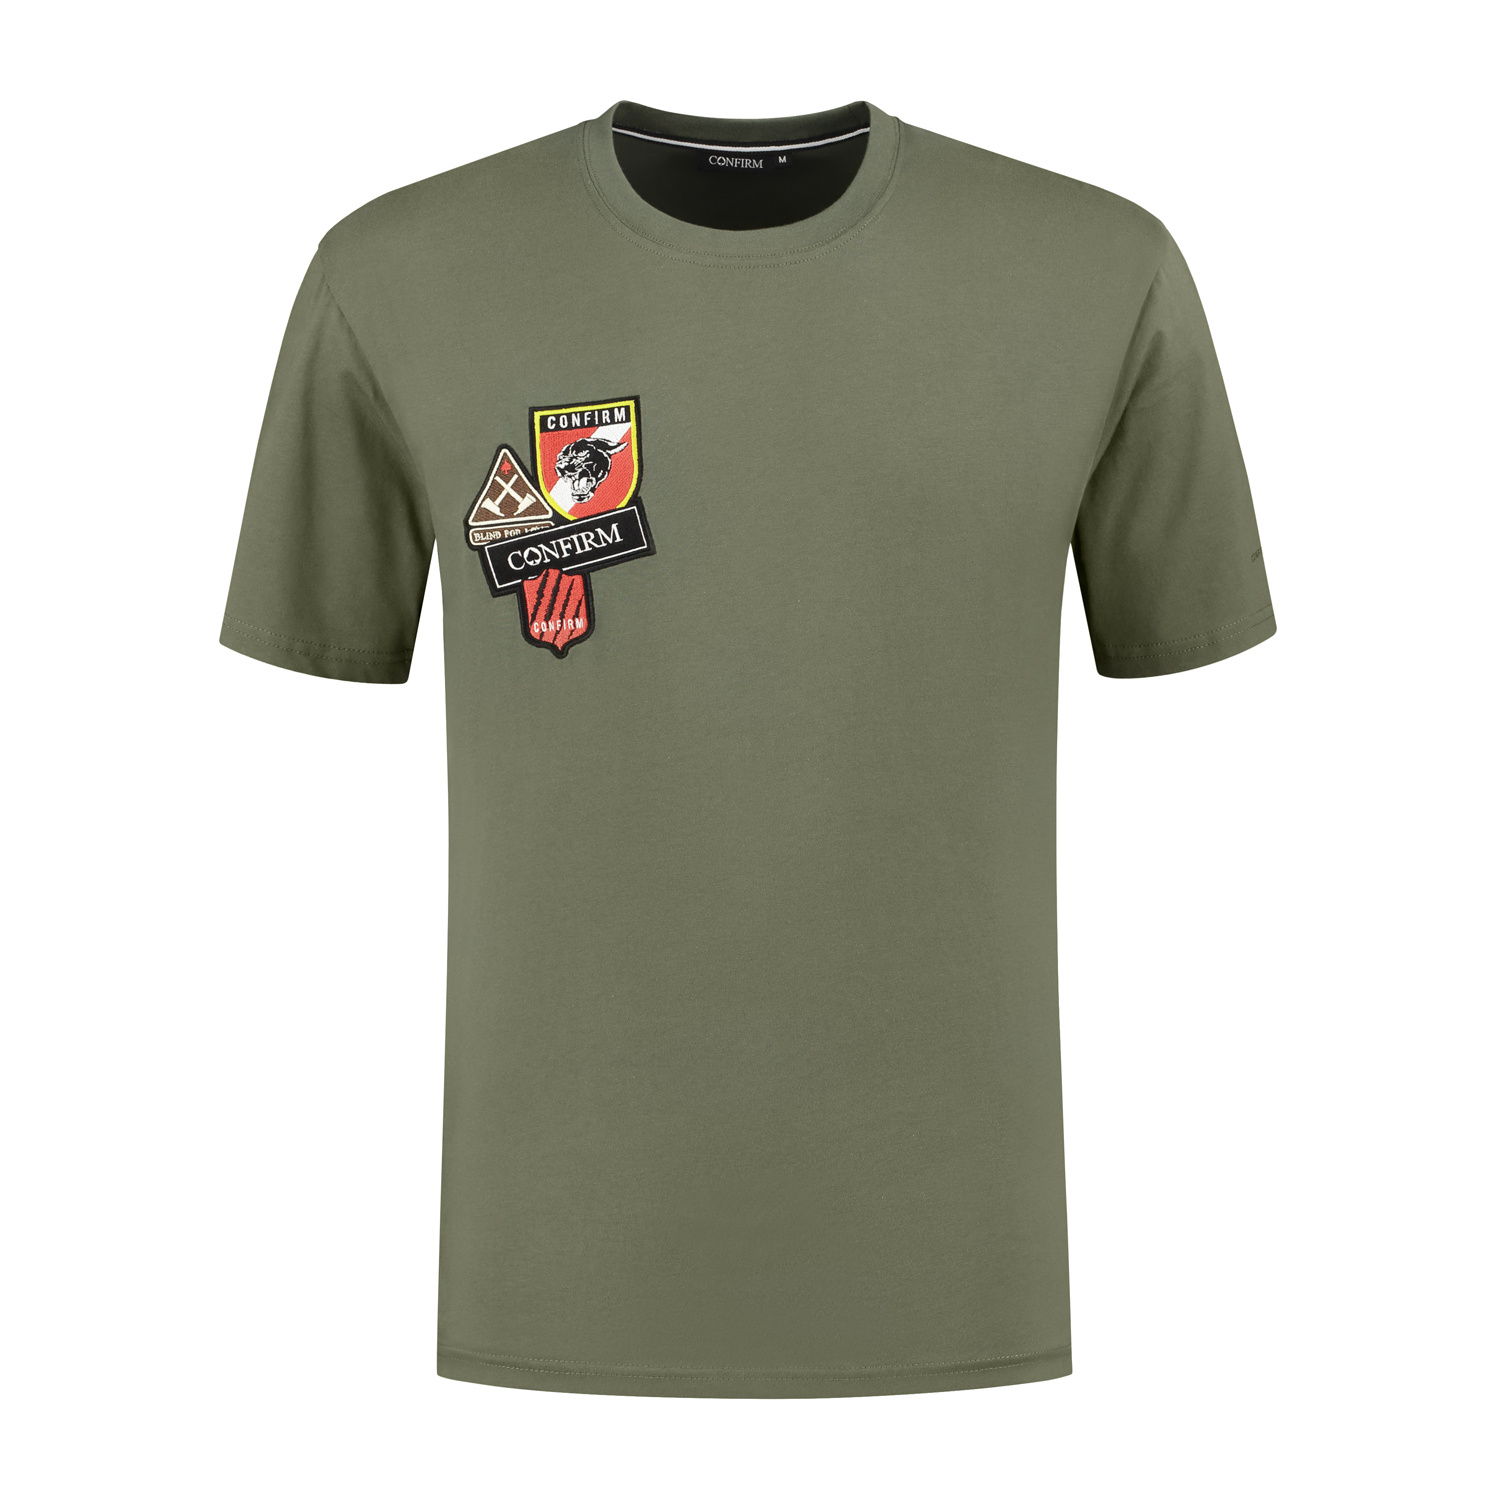 Confirm T-shirt patches - army-1